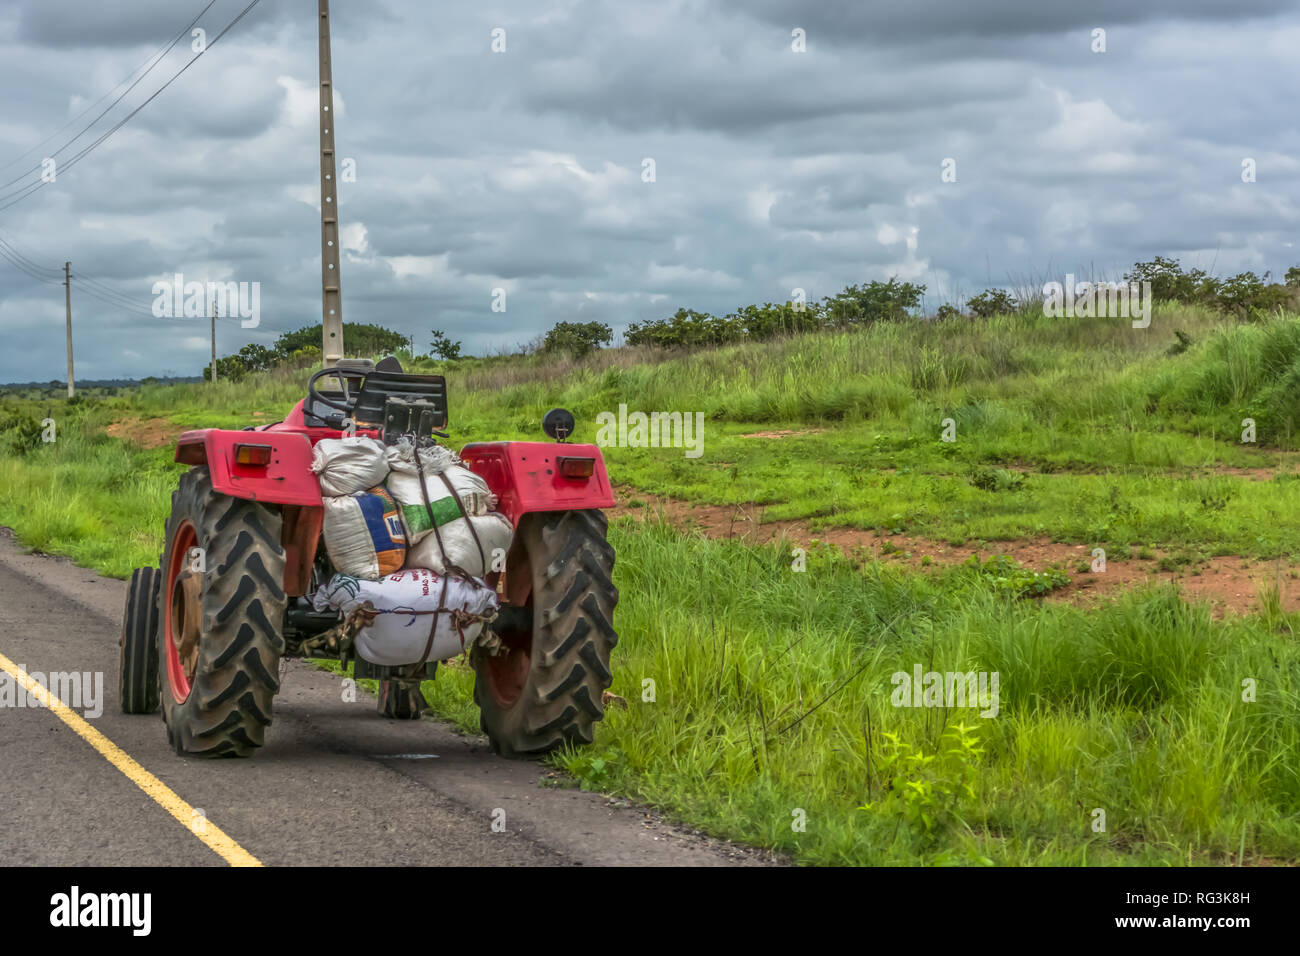 View of a farm tractor on roadside, natural grassland landscape with power lines as background, on Angola - Stock Image